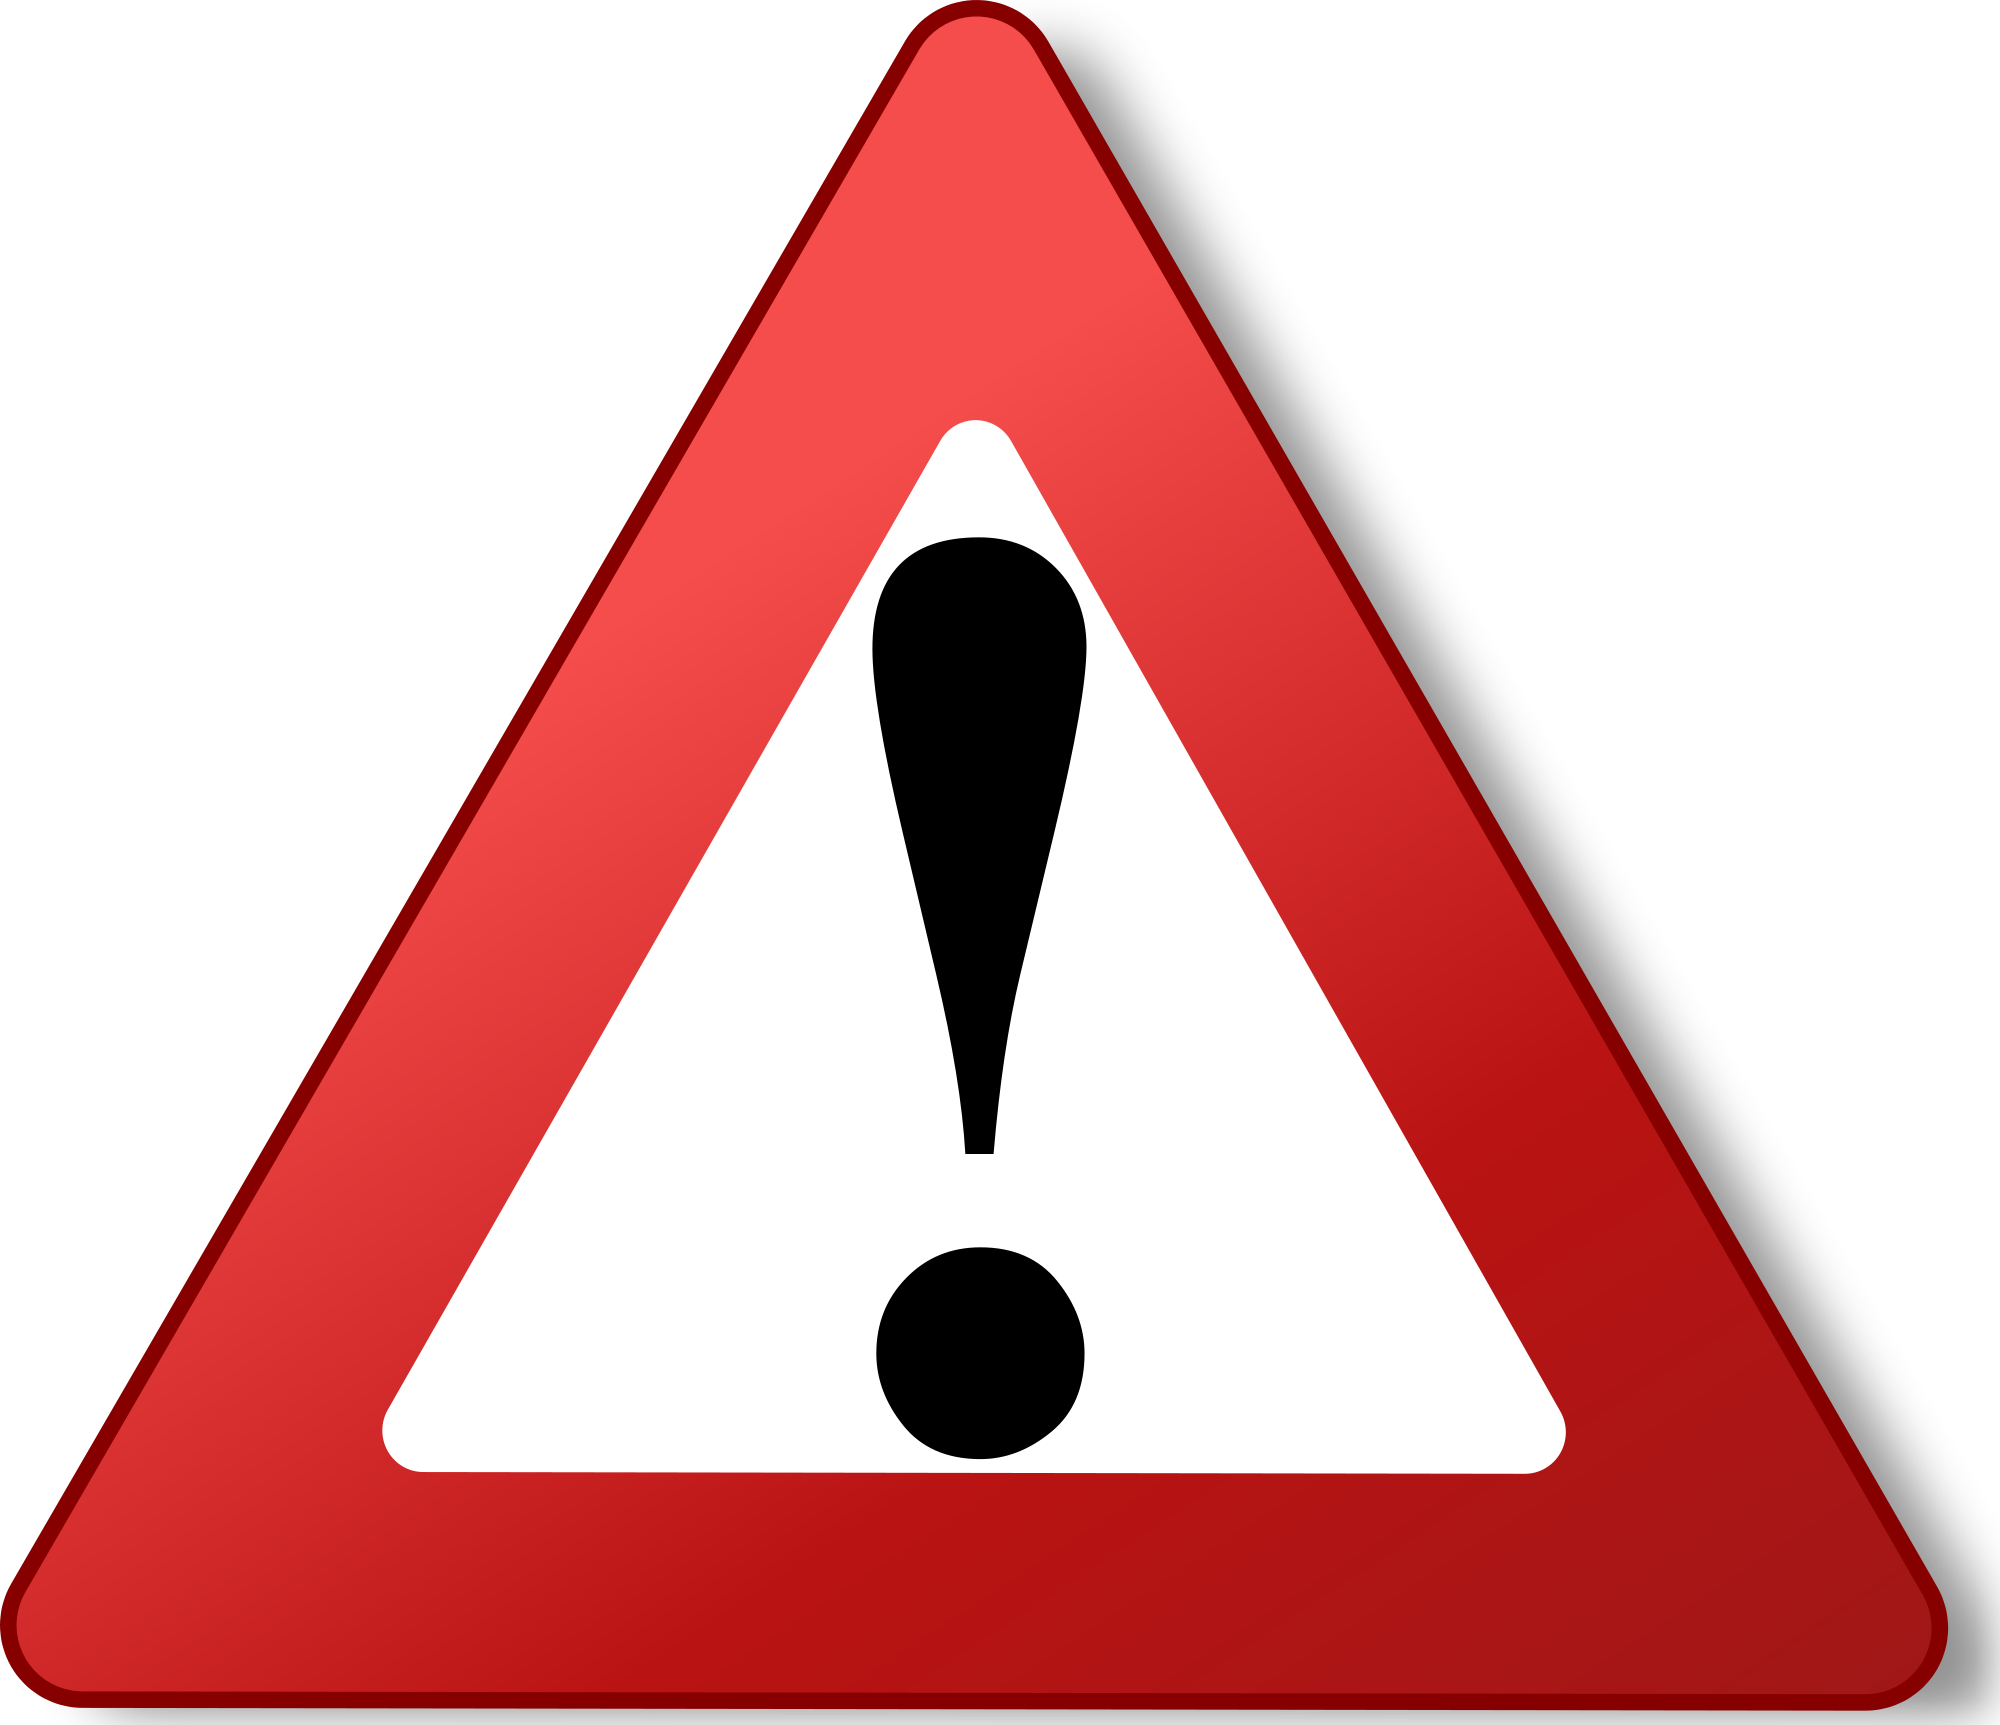 Free Caution Sign Png, Download Free Clip Art, Free Clip Art on.